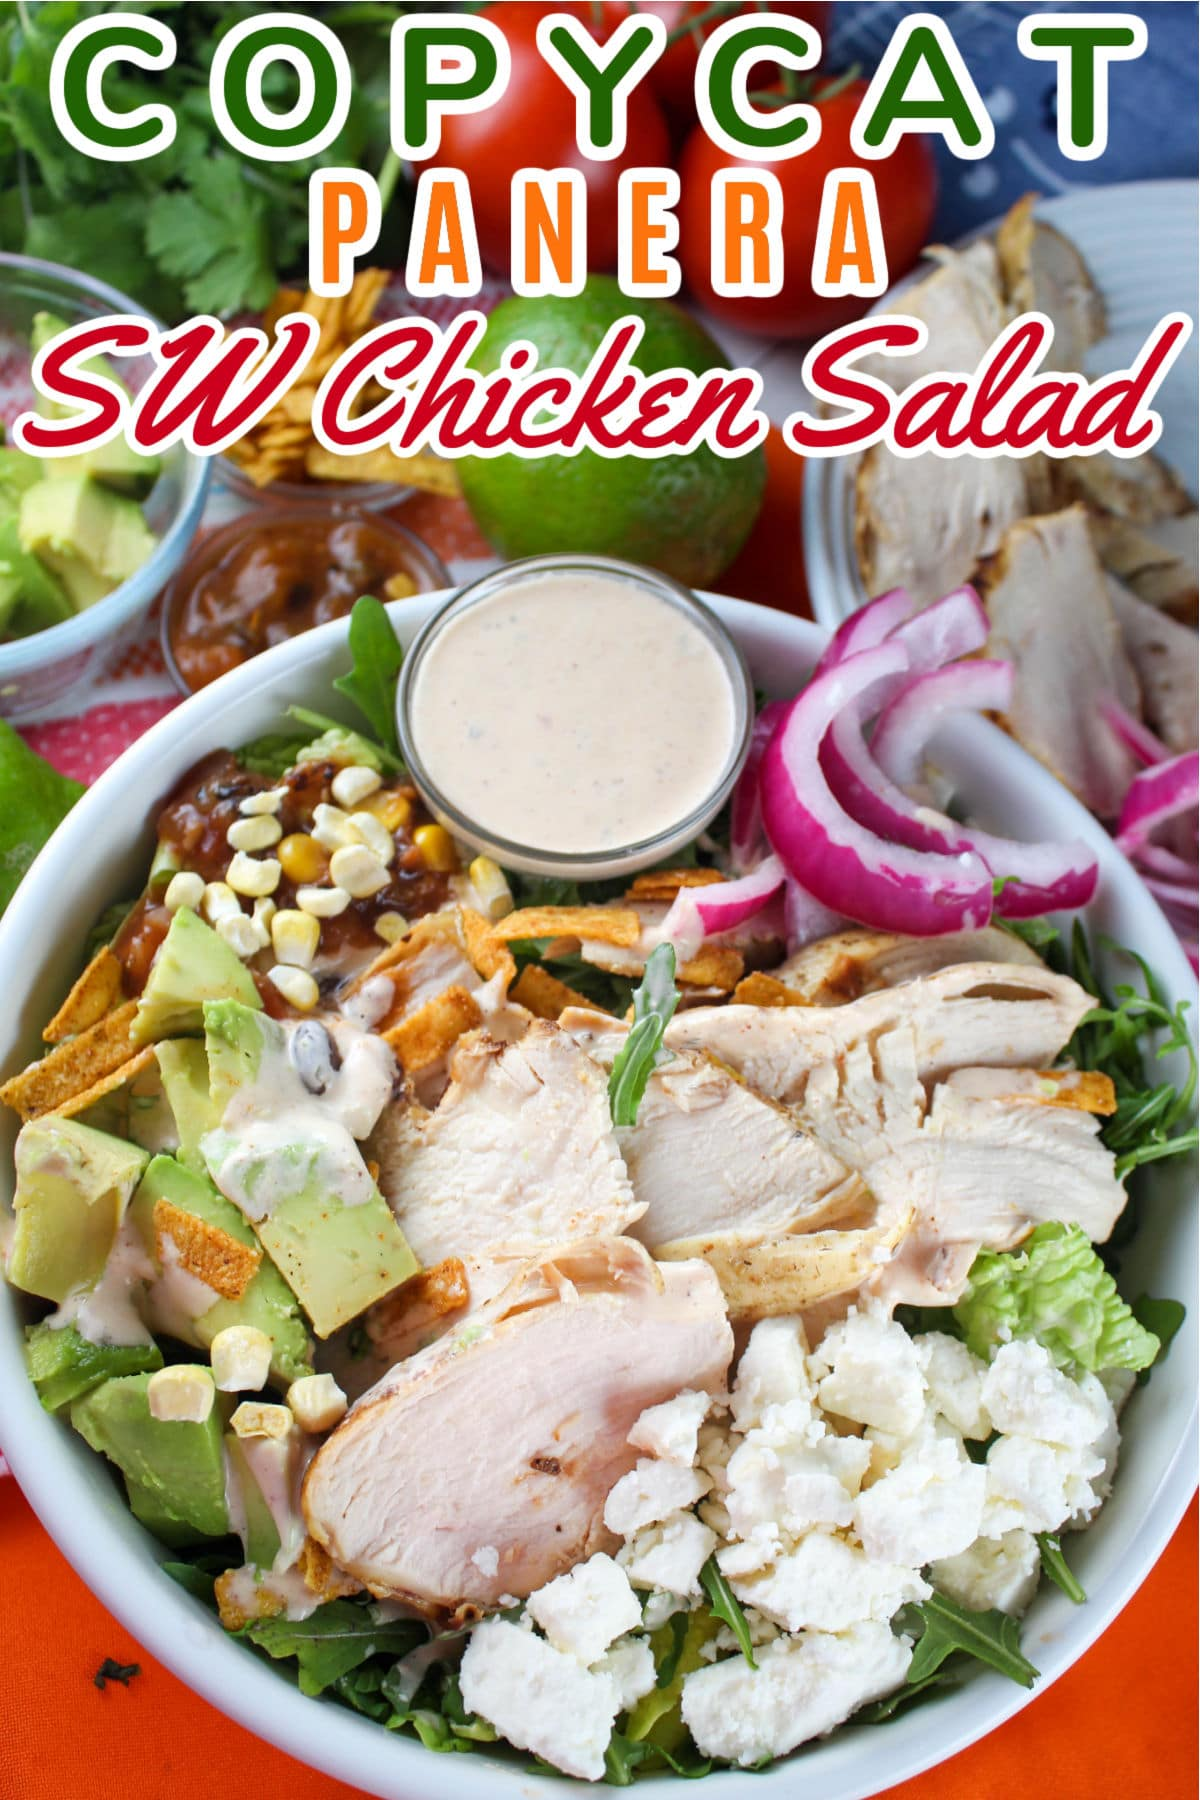 This Copycat Panera Southwest Chili Lime Ranch Salad with Chicken is my absolute favorite!!! I made it three times this past week!!! Once you have all the ingredients - you can't help but make it every day!  via @foodhussy